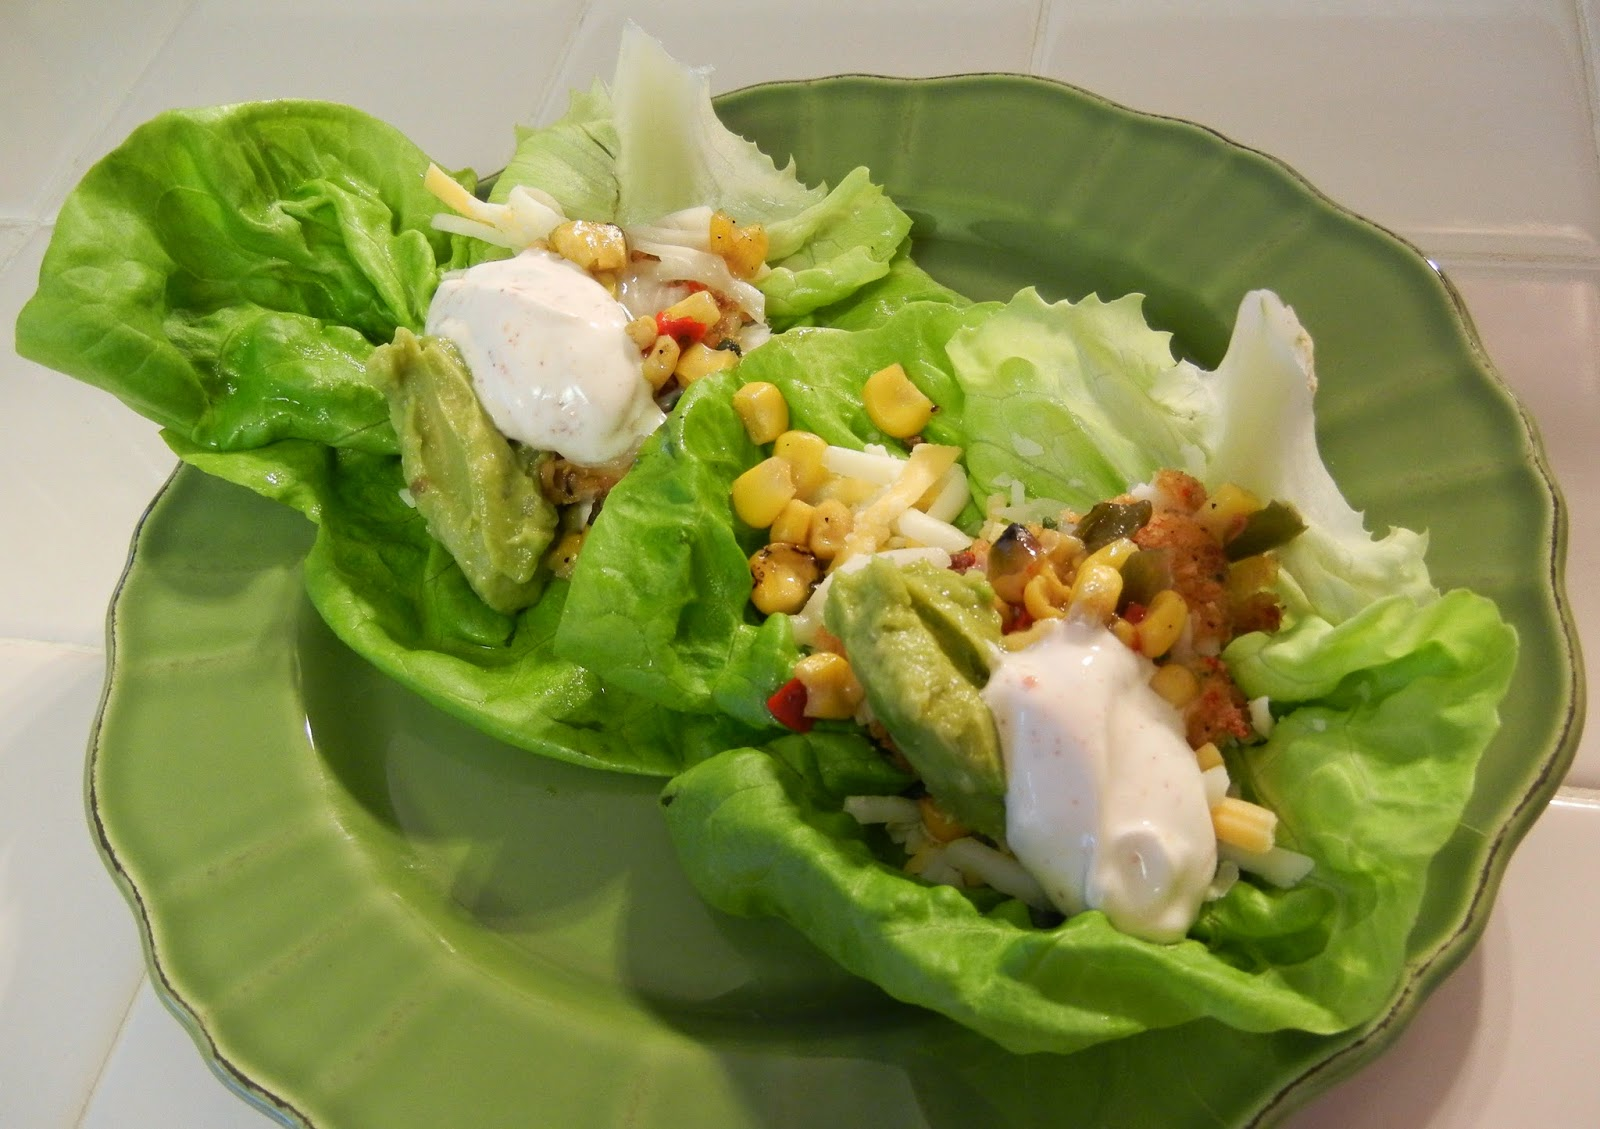 Lettuce+Cup+Fish+Tacos Weight Loss Recipes Post Weight Loss Surgery Menus: A day in my pouch